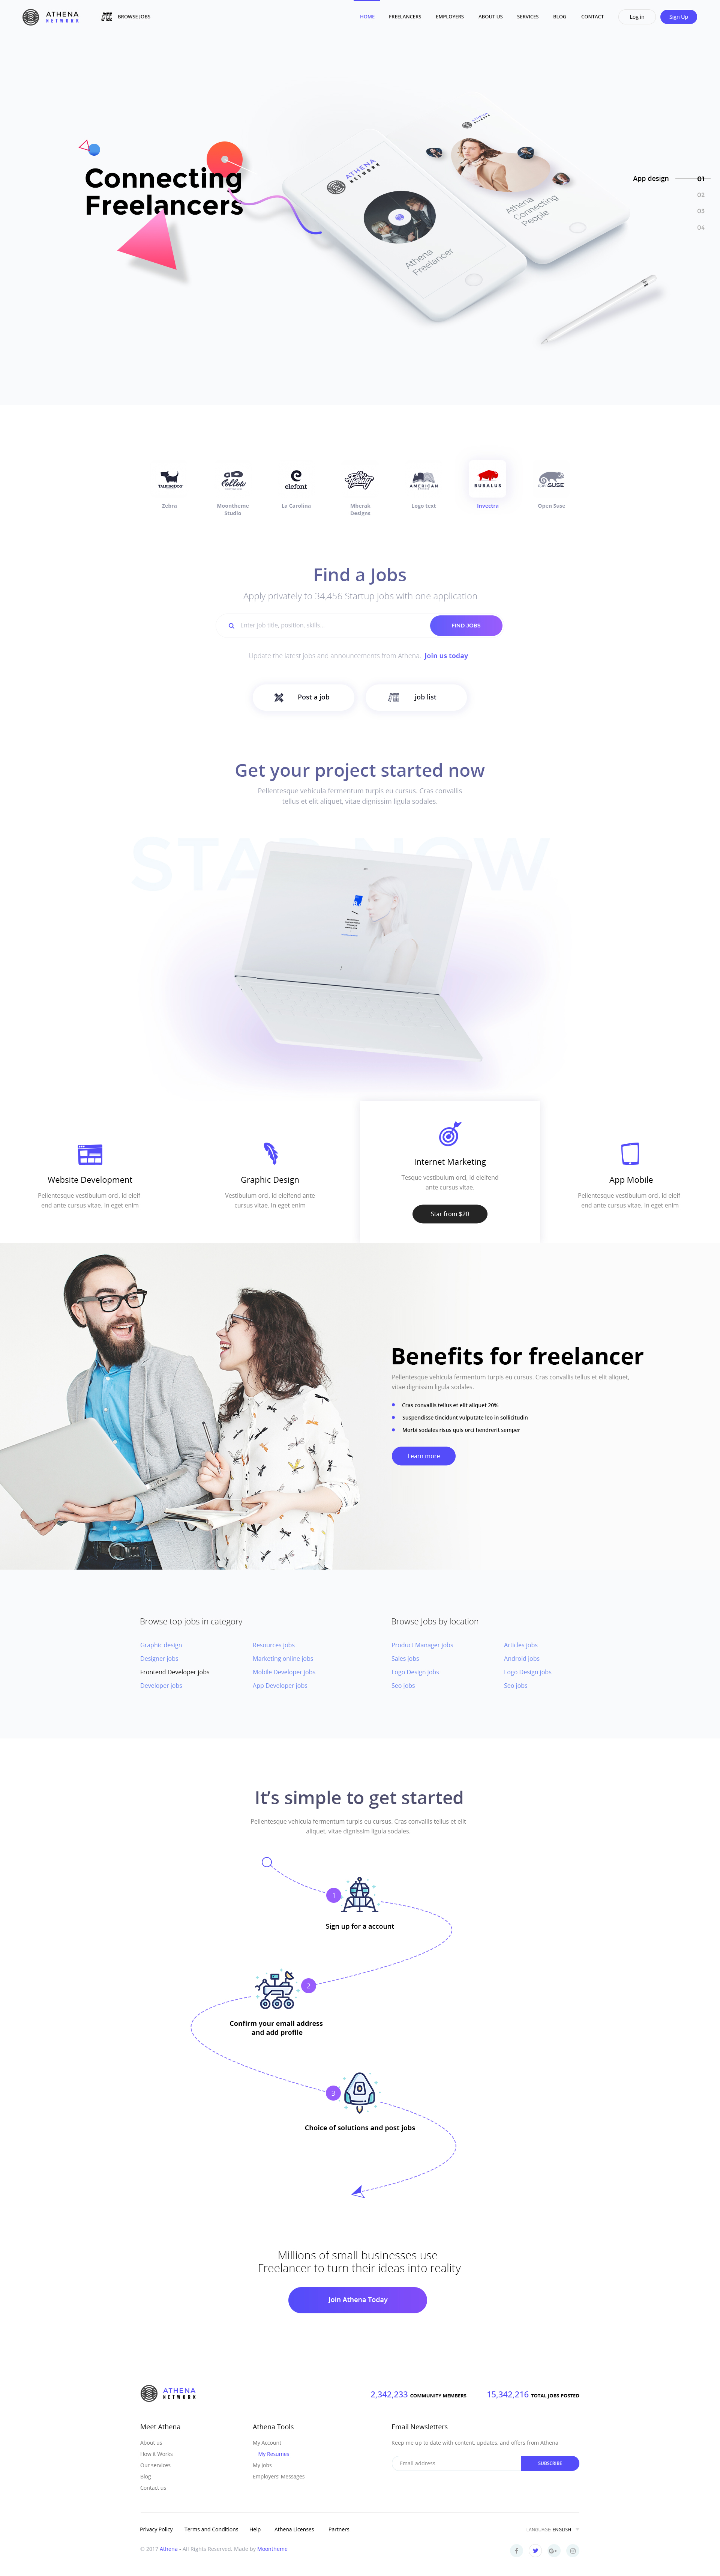 ATHENA - Freelancer and Employers Jobs Search Template by moontheme